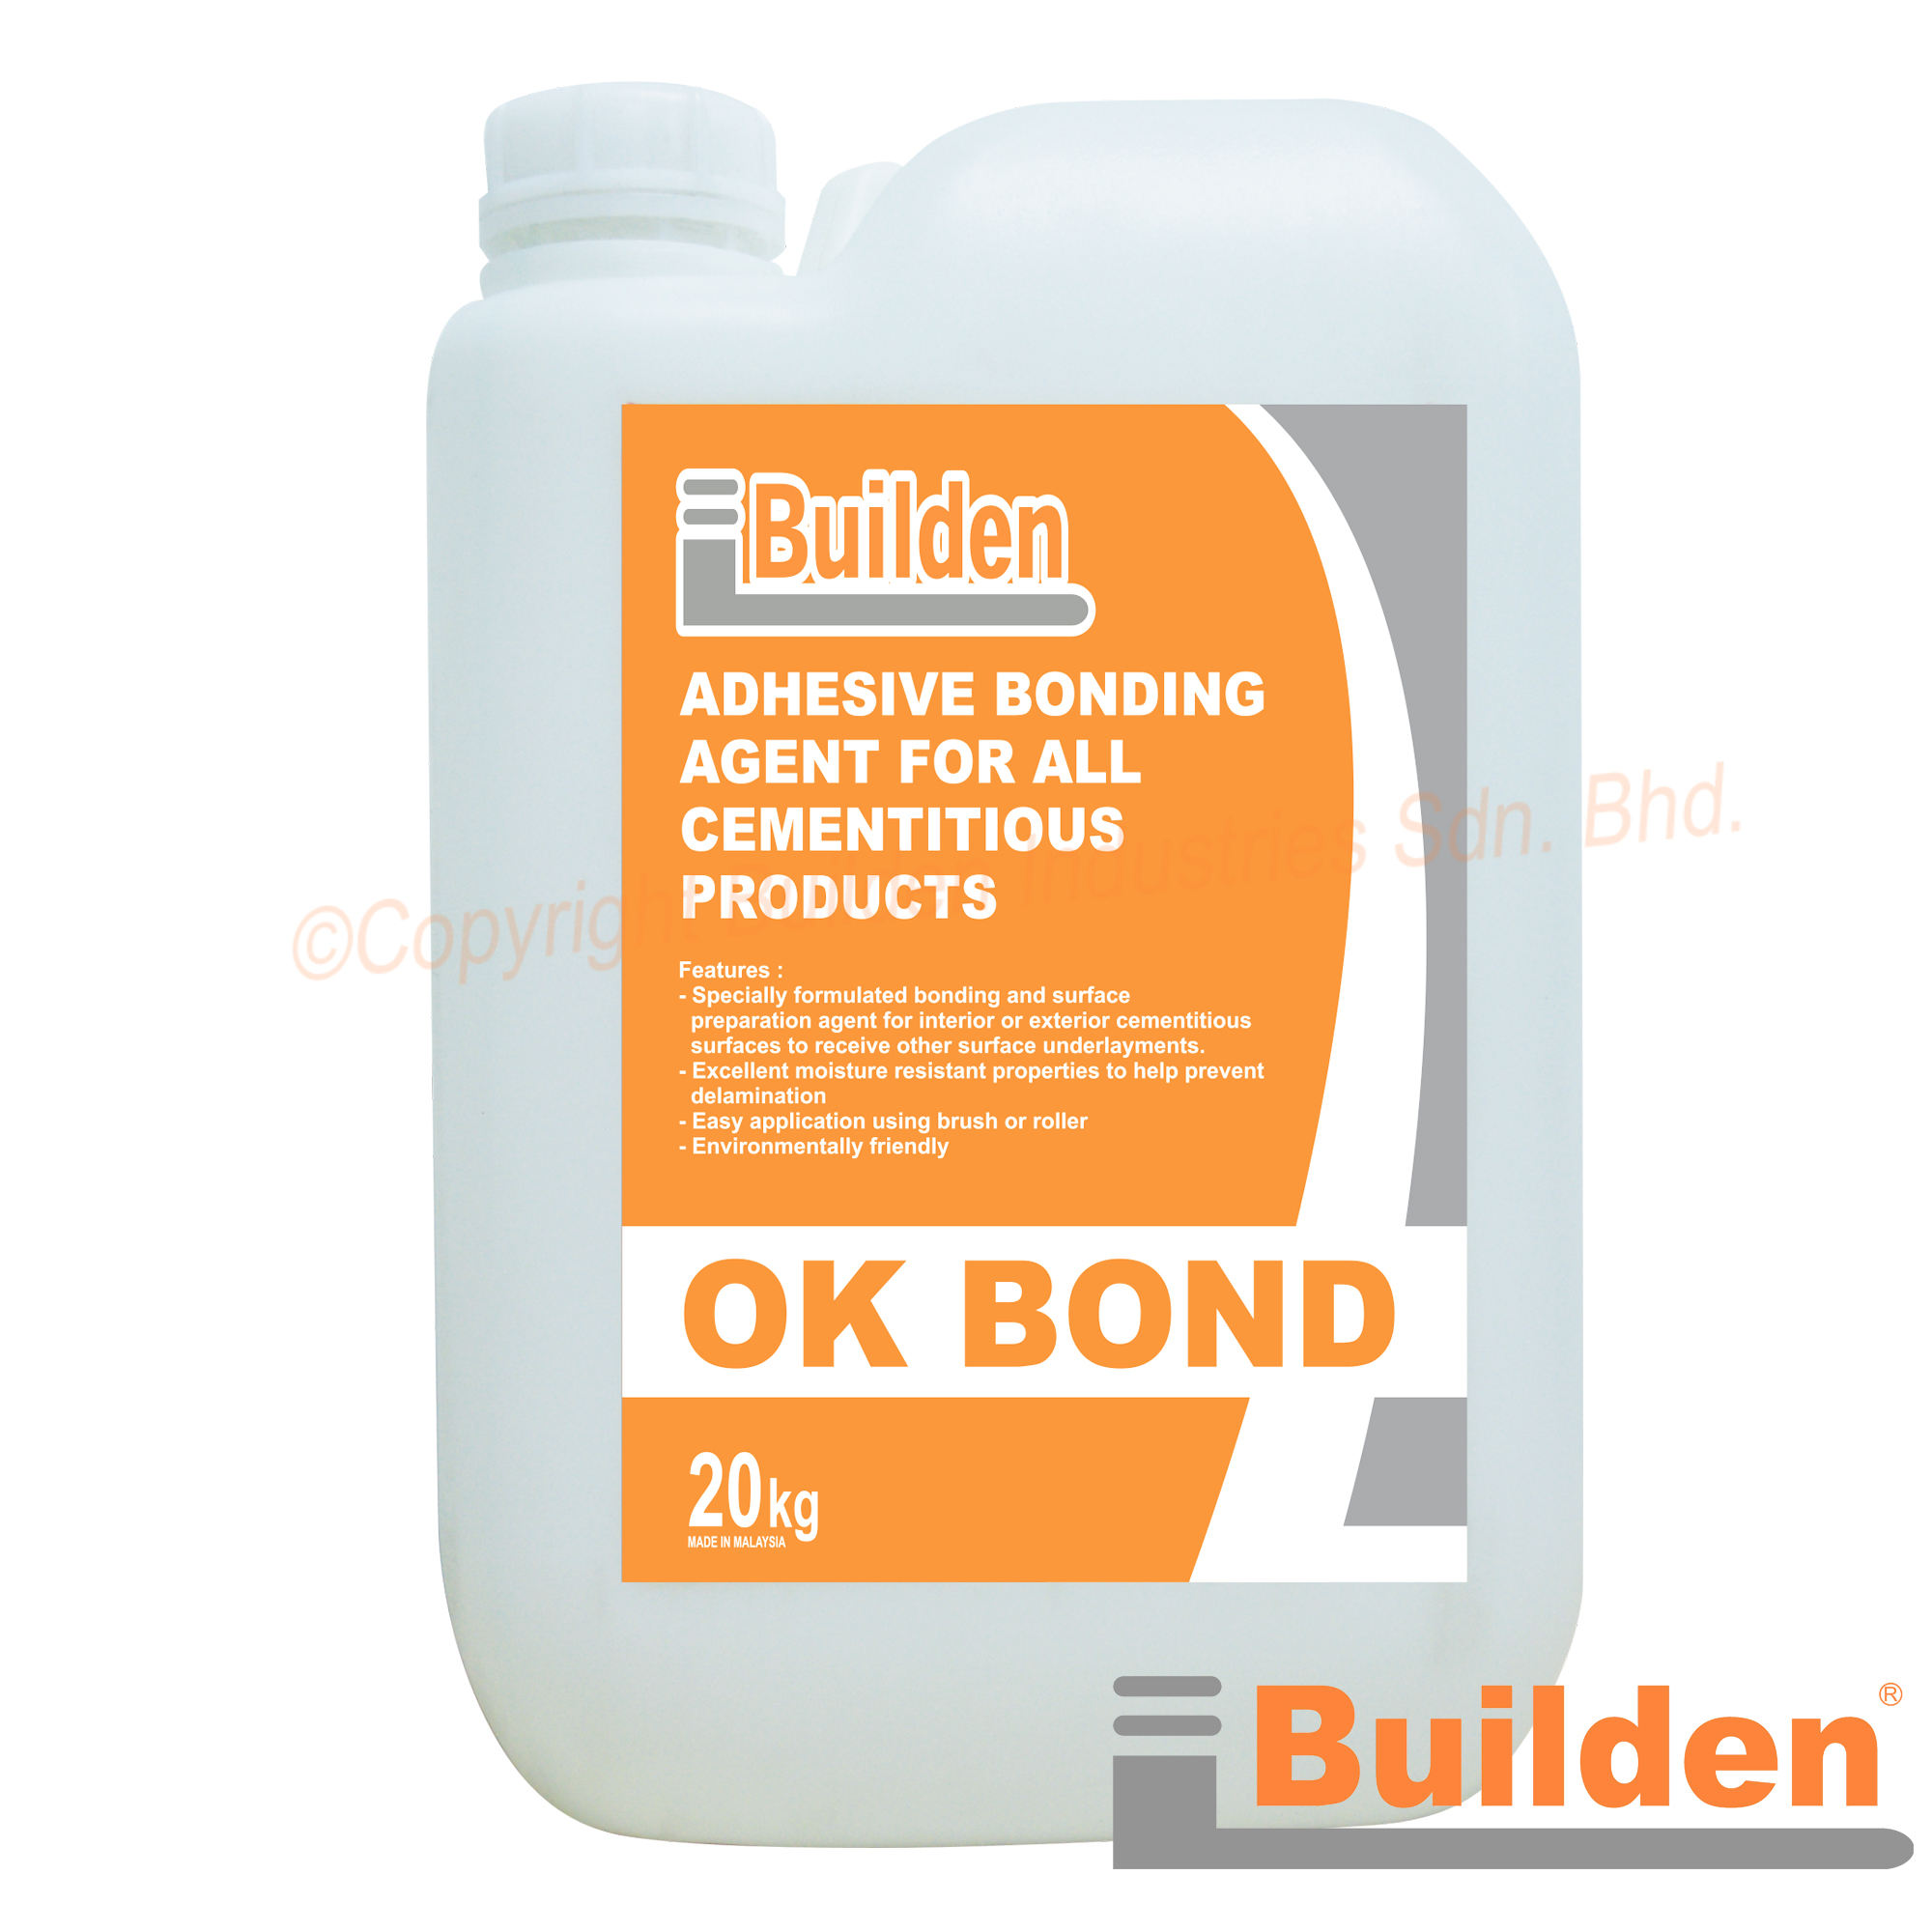 Builden OK BOND Adhesive Bonding Agent for All Cementitious Products (20 KG)